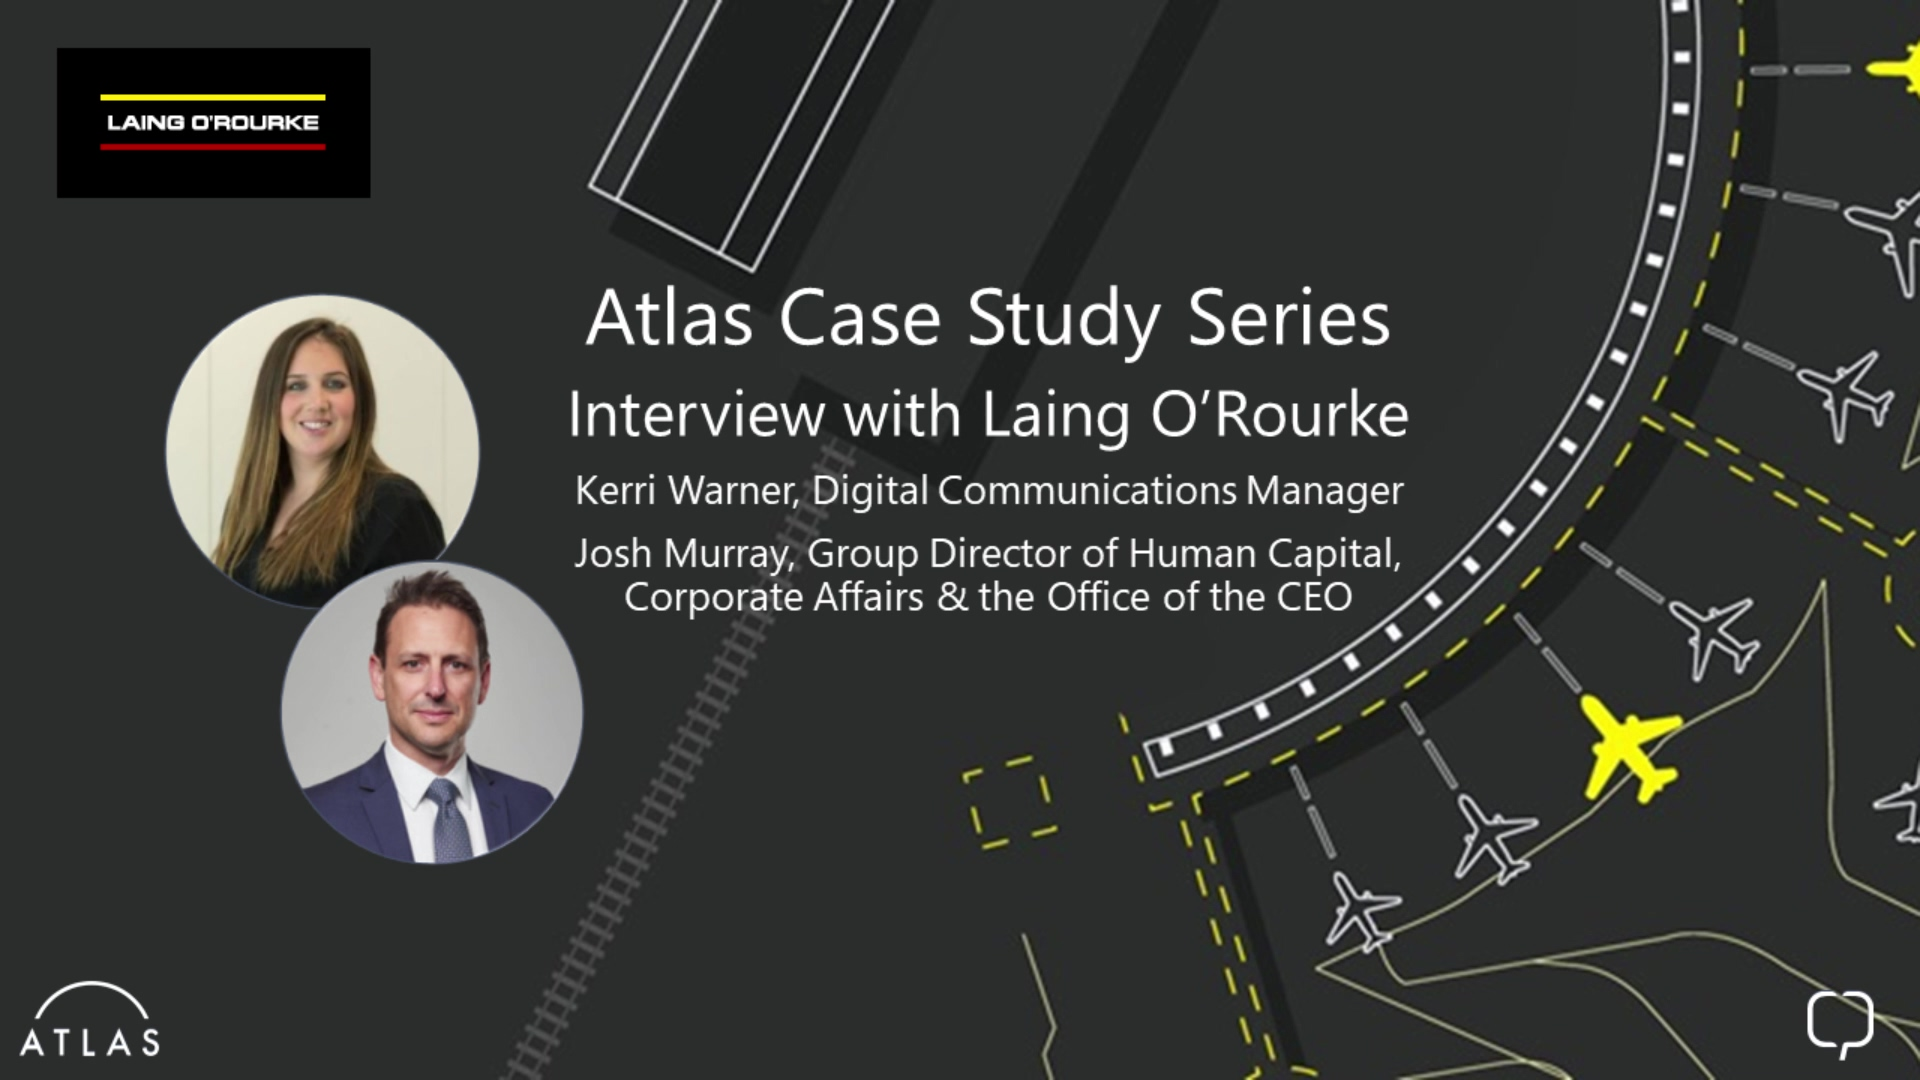 LOR Case Study - 1 - Why Atlas + Launch-thumb-1